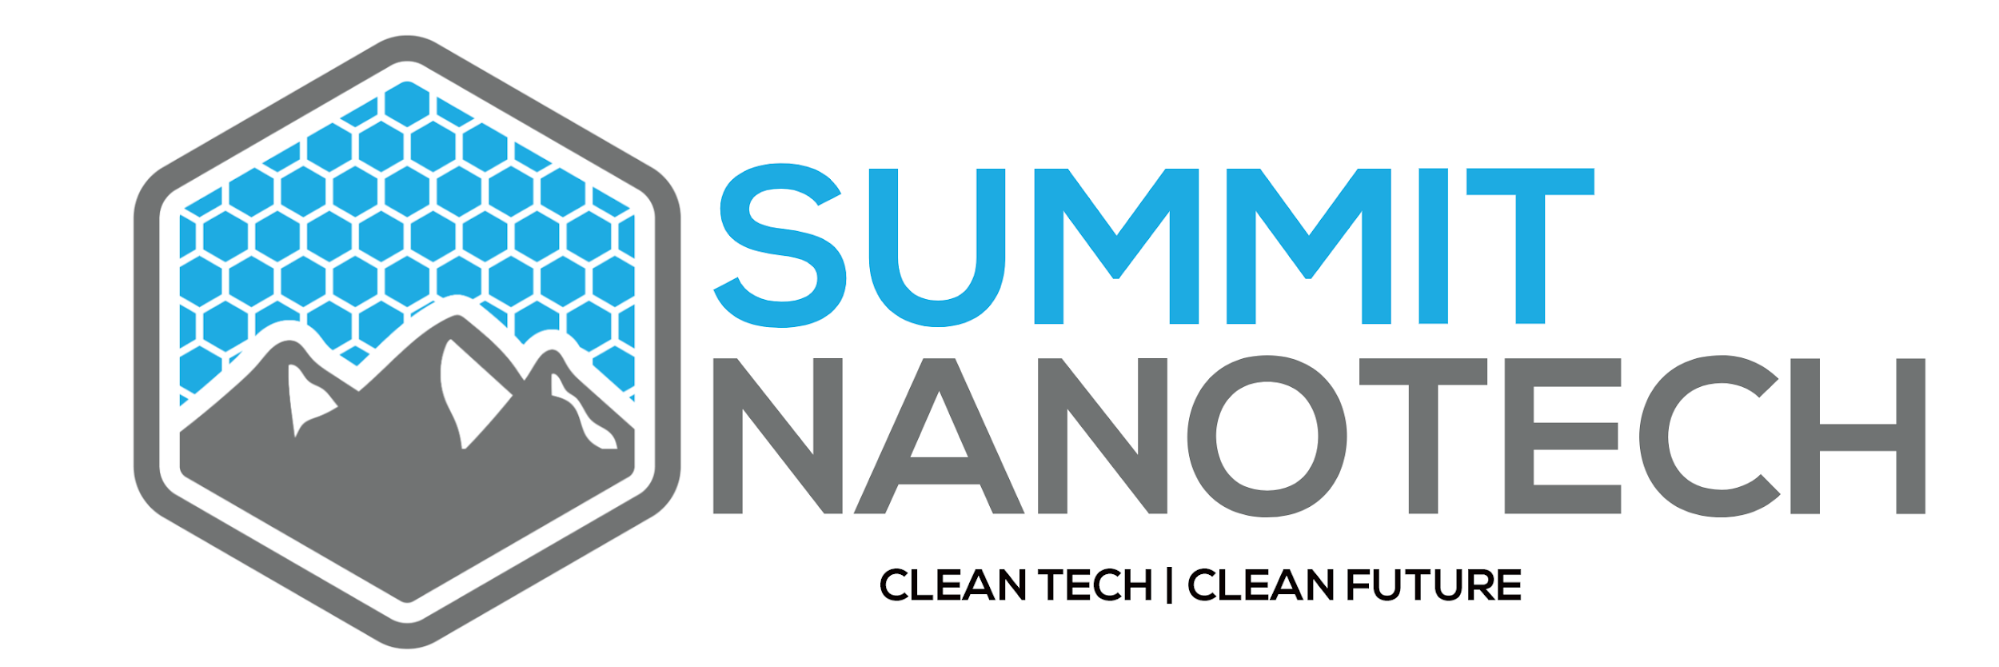 Summit Nanotech